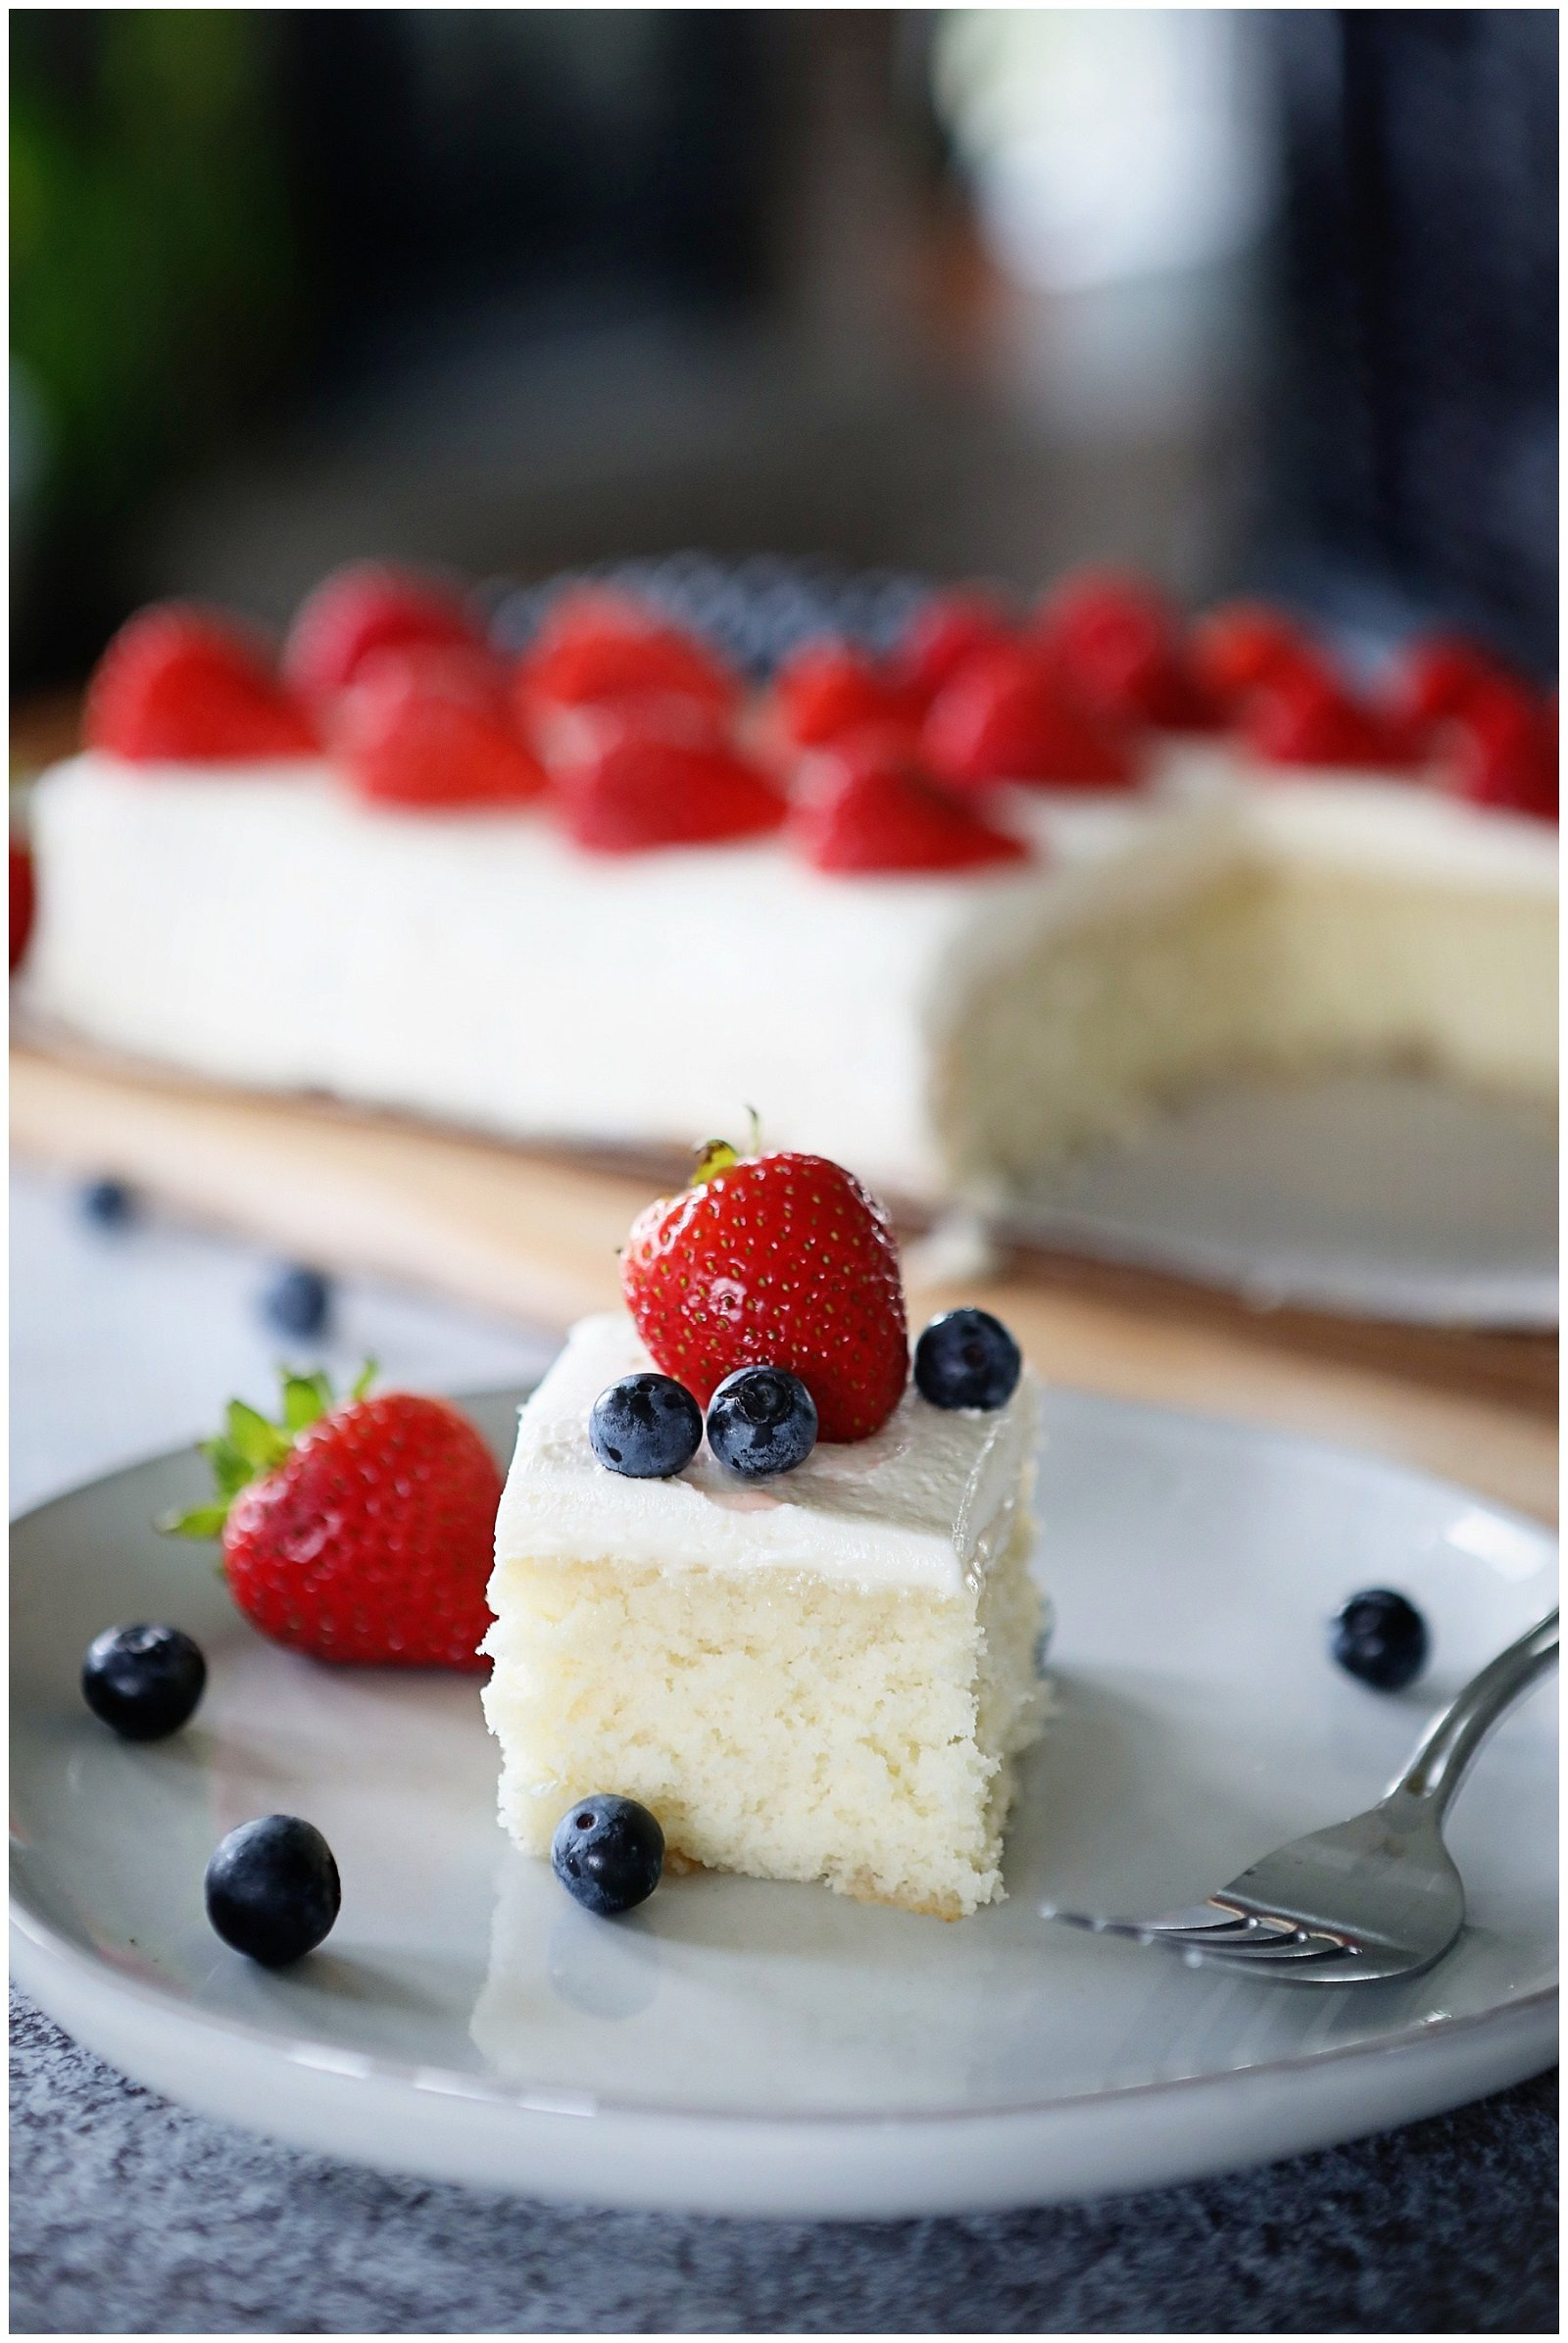 White cake recipe with smooth buttercream frosting